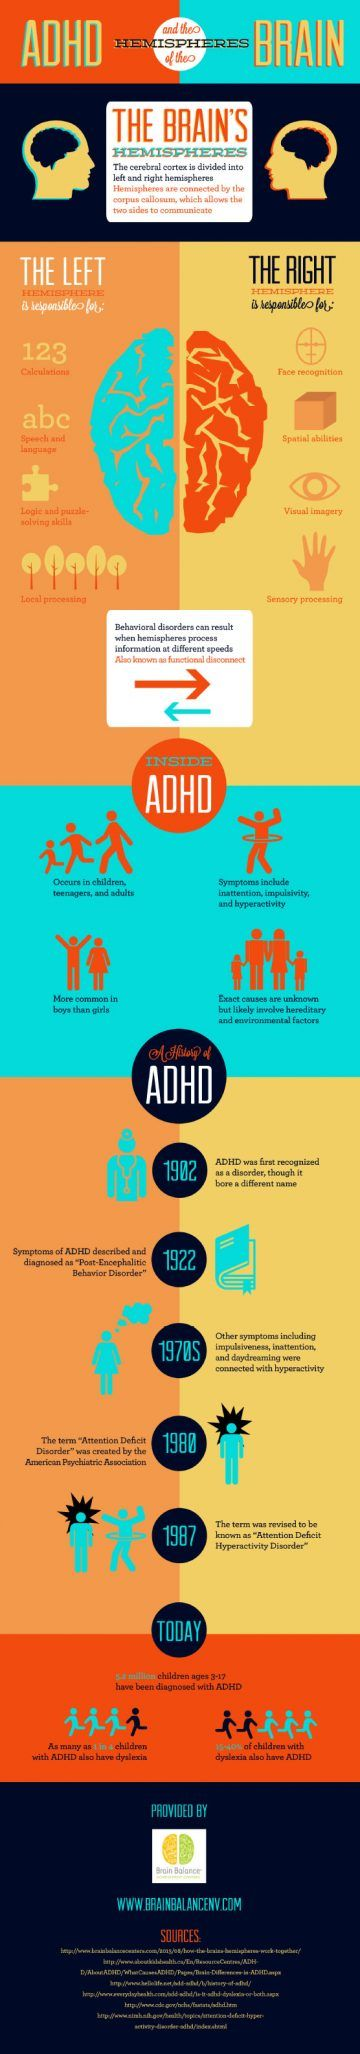 ADHD Adults Three Times As Likely to Develop Common Form of Dementia